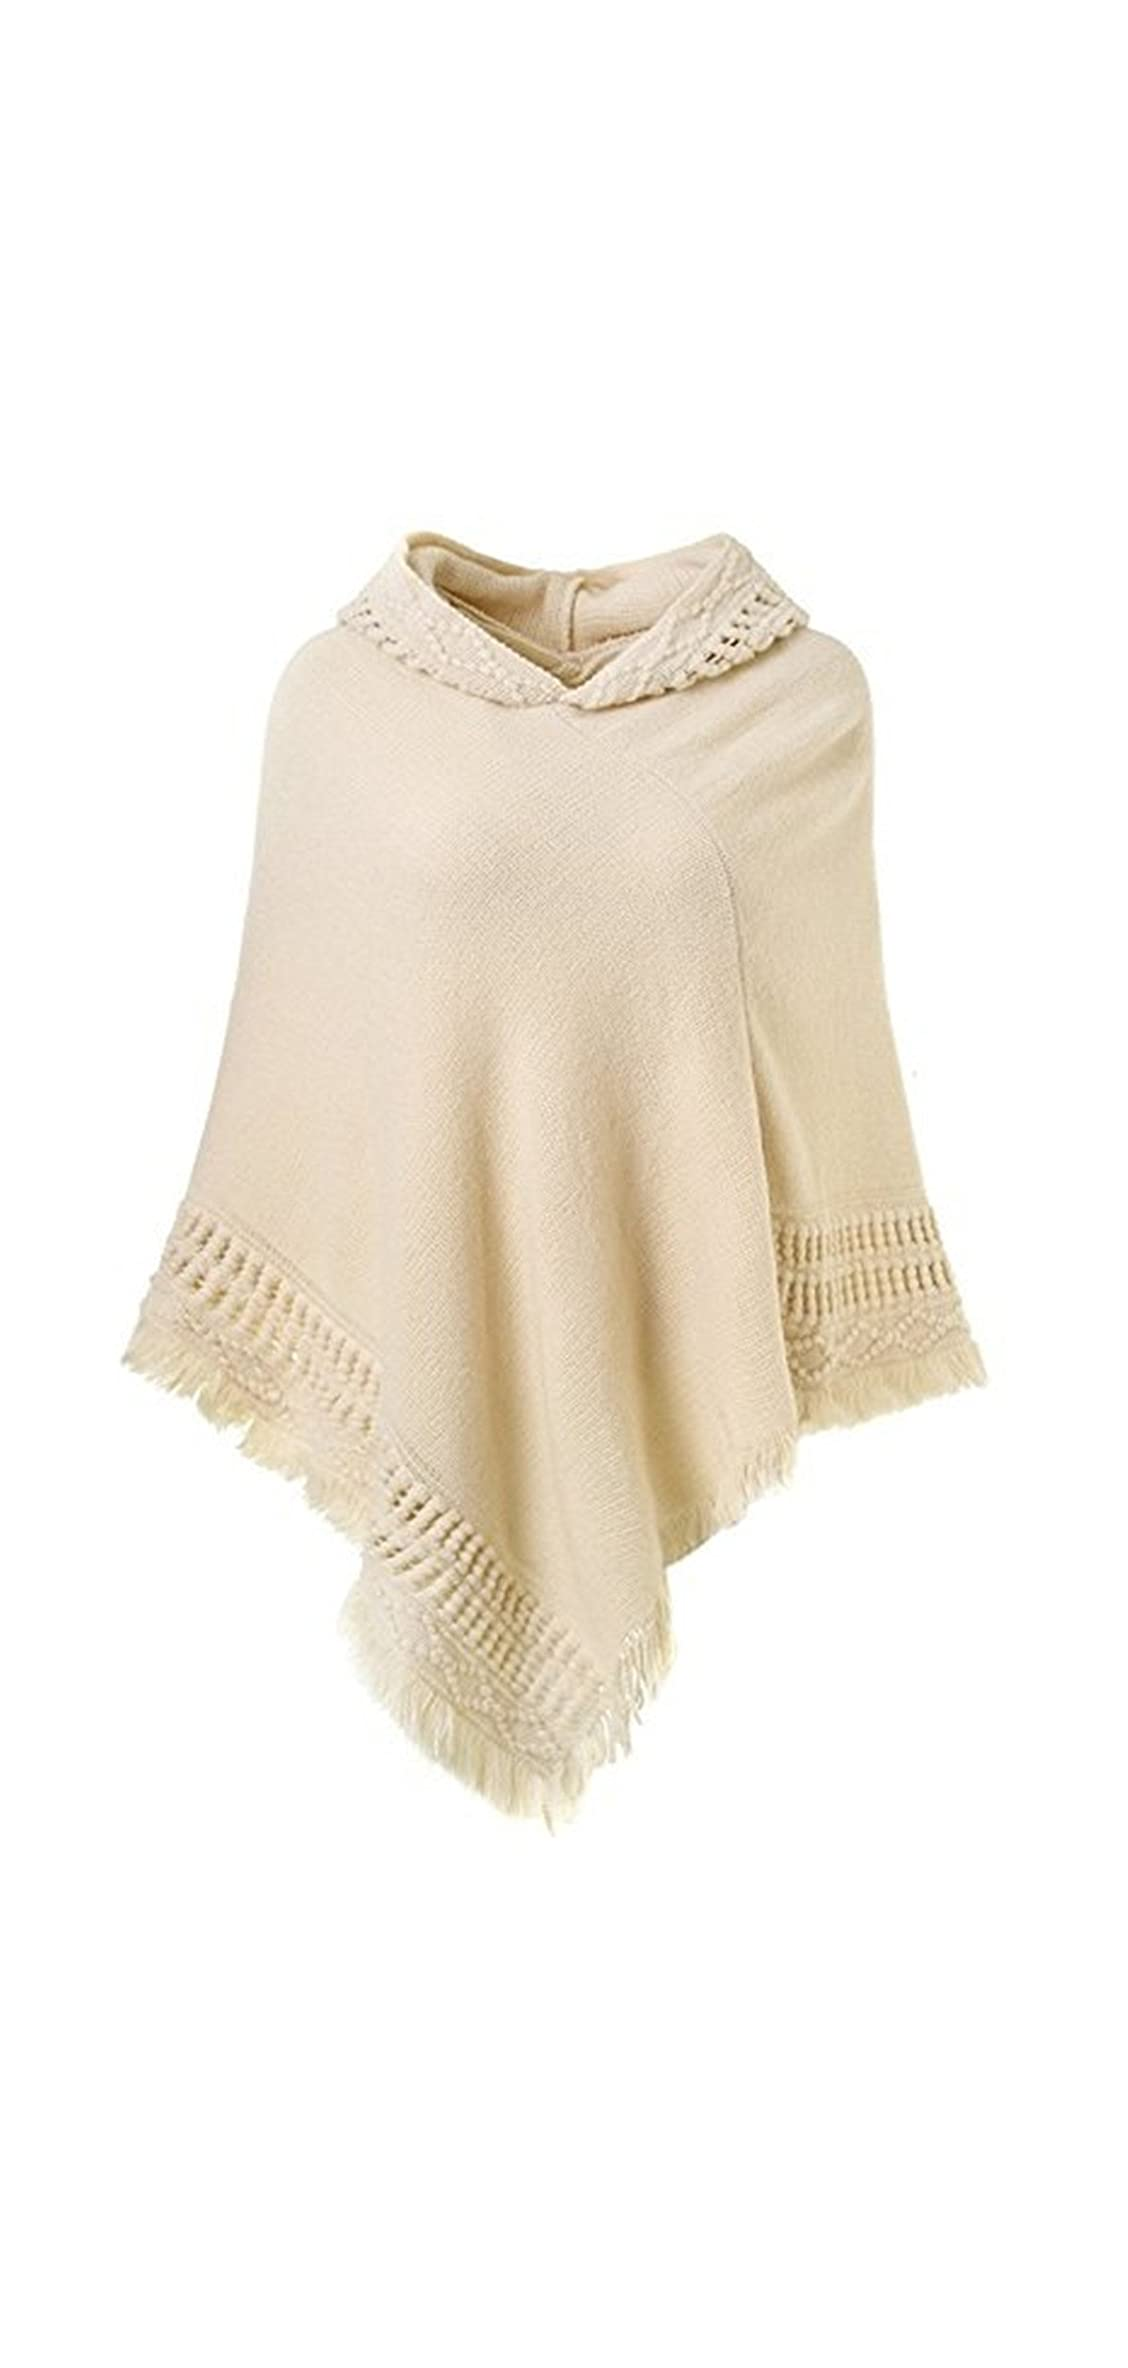 Women's Ponchos Shawls Capes Hooded Knitted Wrap Coats